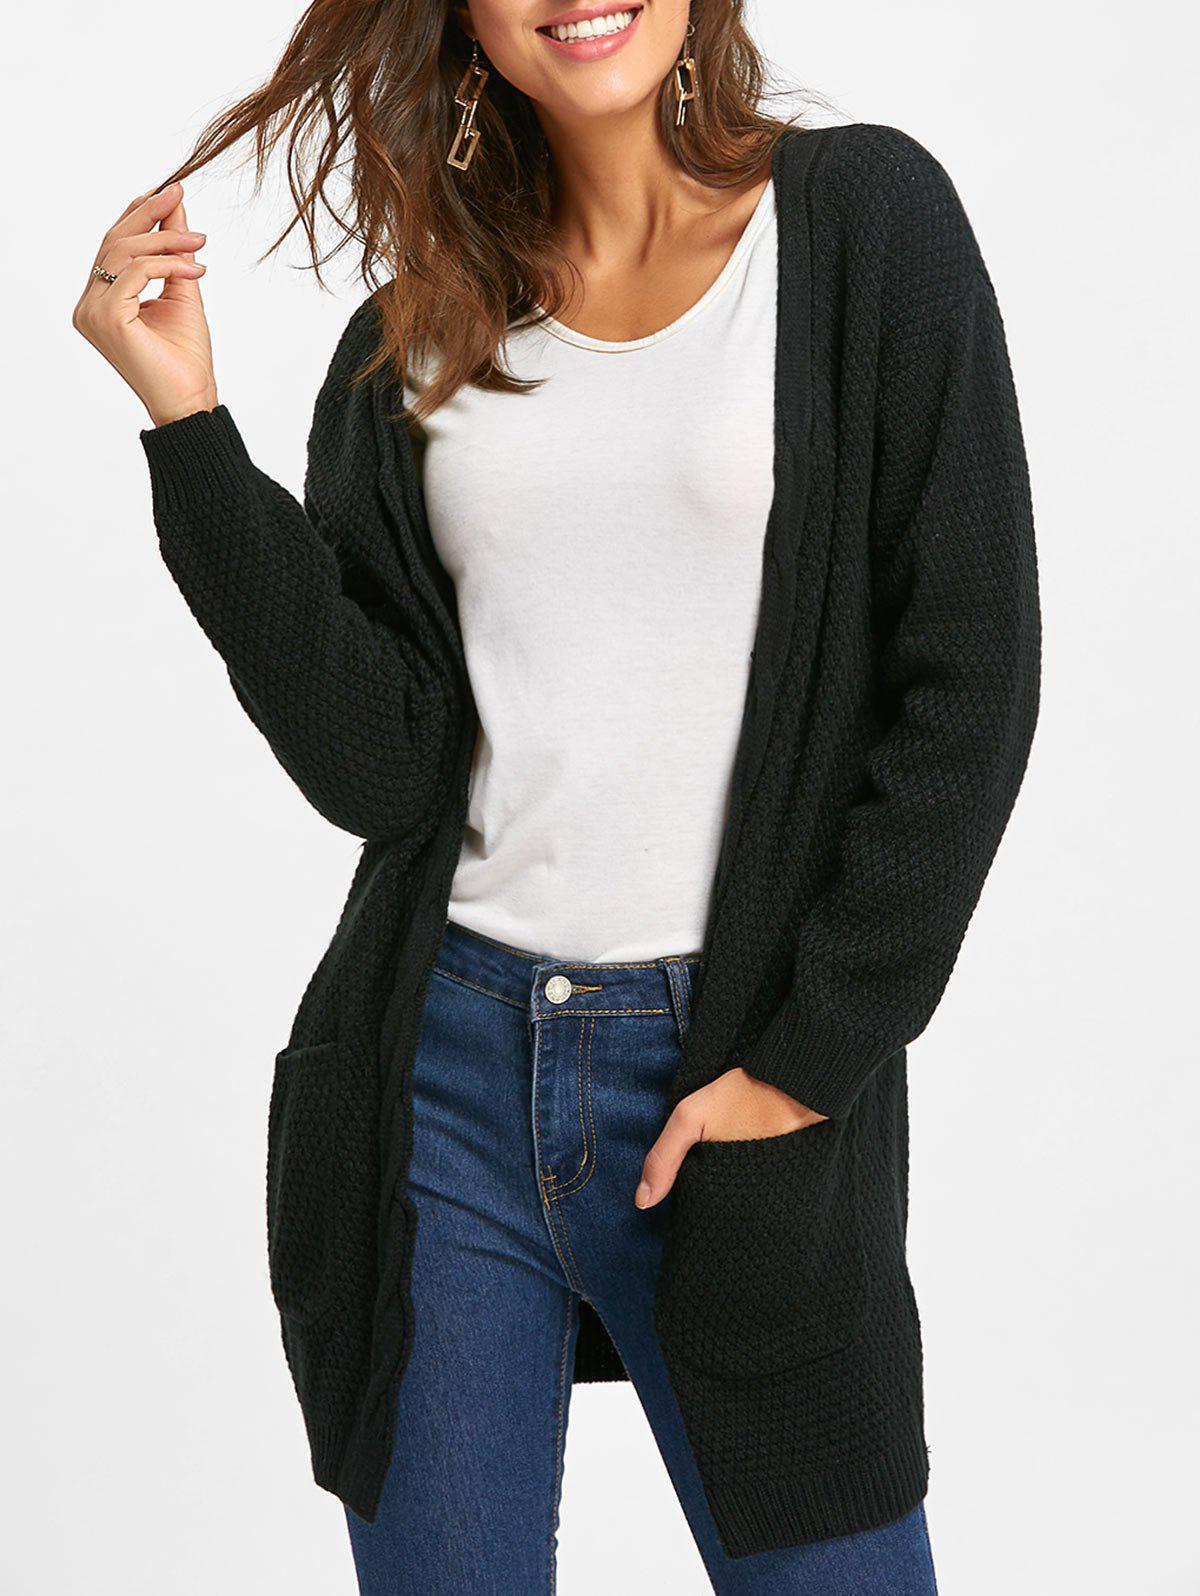 Pocket Open Front Longline Knitted Cardigan open front longline striped cardigan